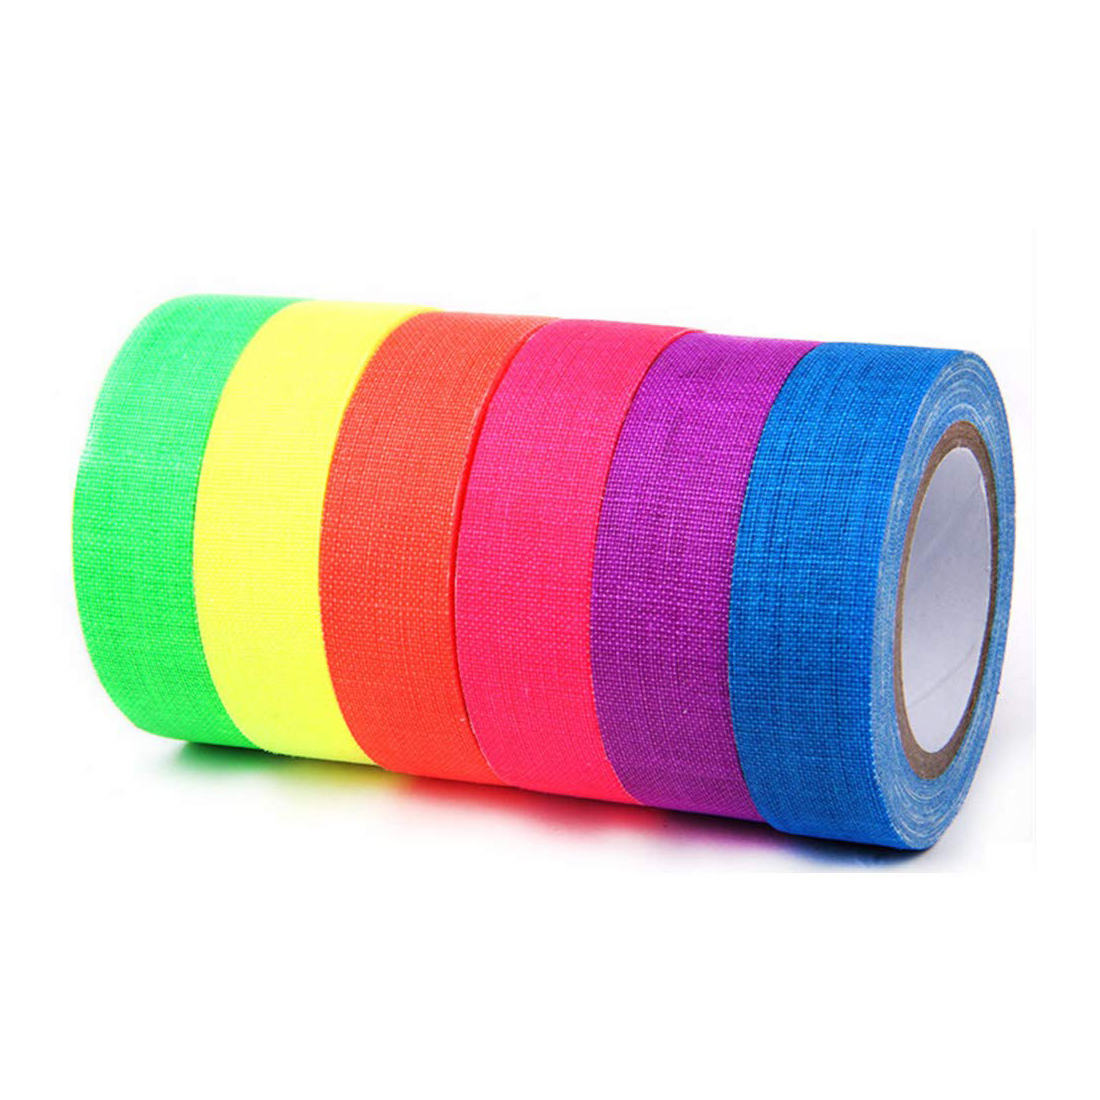 EONBON Free Samples UV Blacklight Reactive Neon Fluorescent Duct Gaffer Tape for Party Decoration